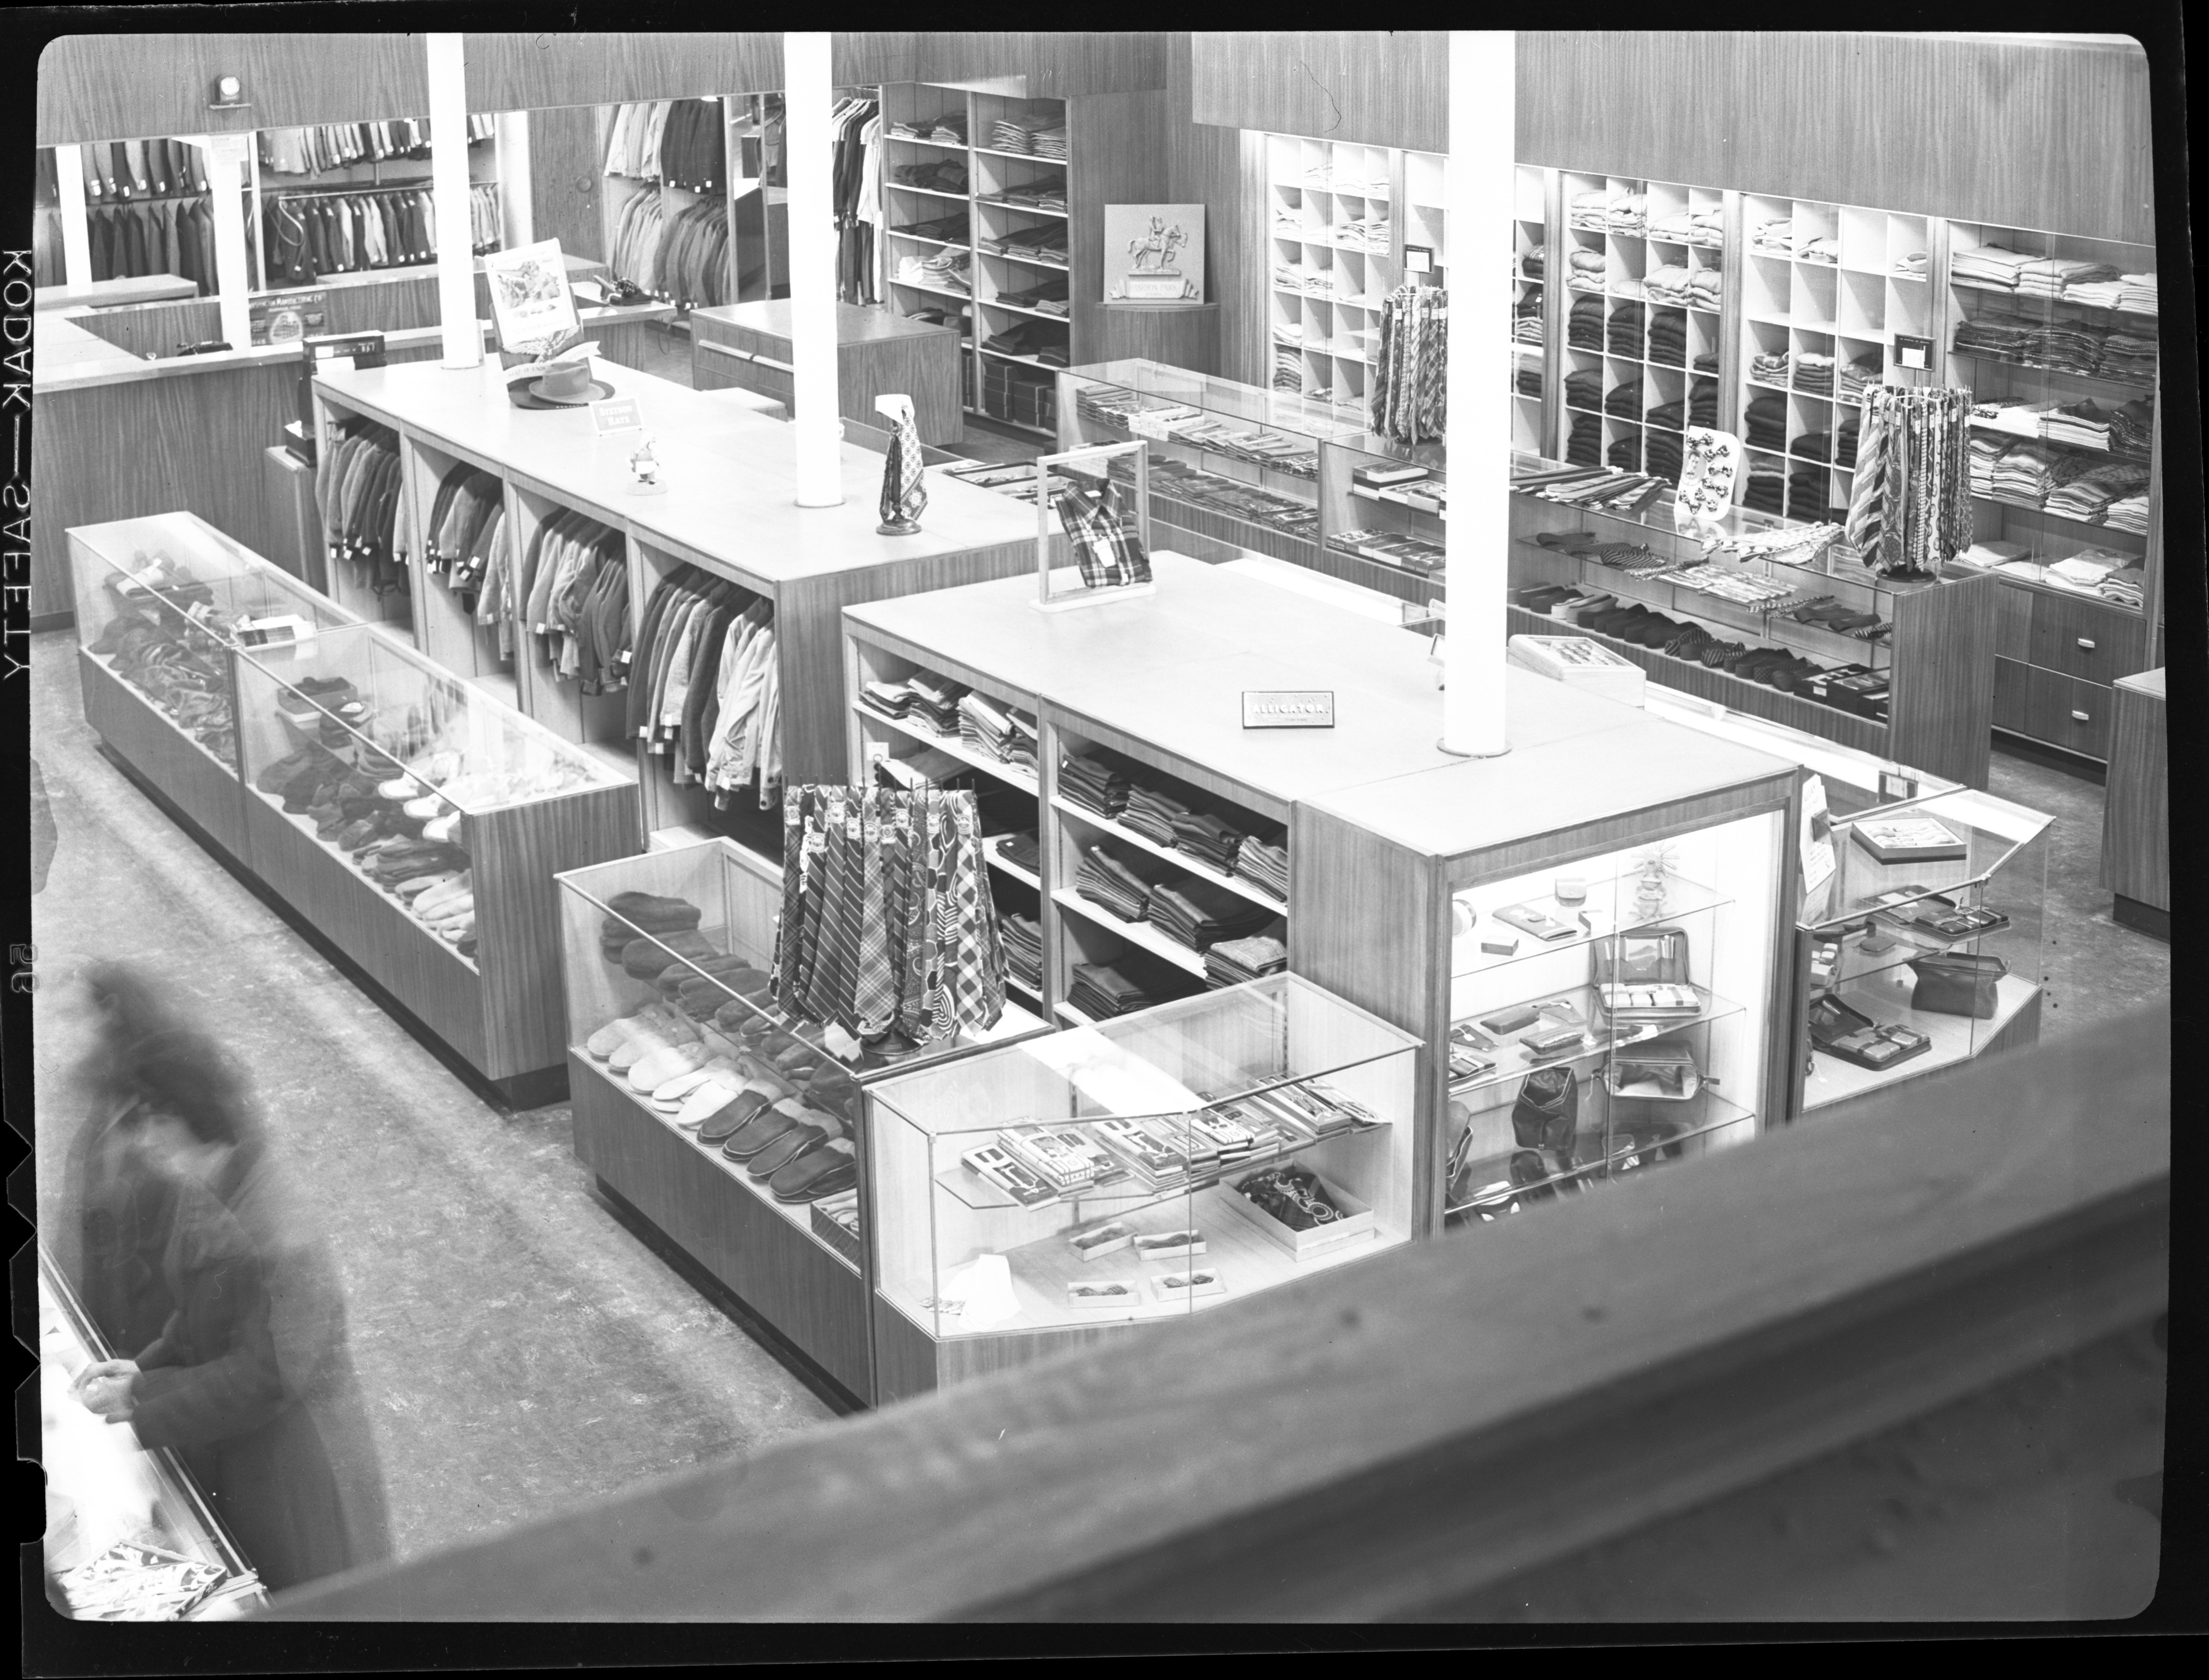 Interior of Fiegel's Clothing Store, March 1946 image